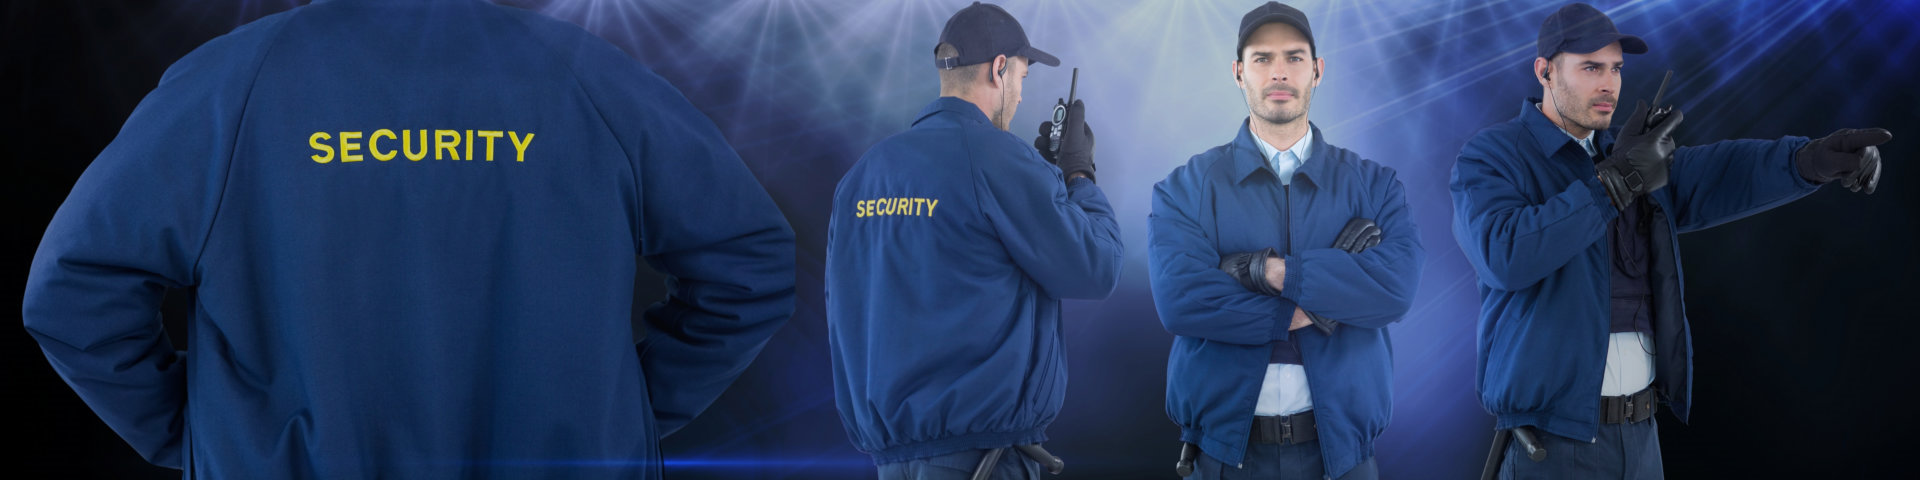 security doing different posture